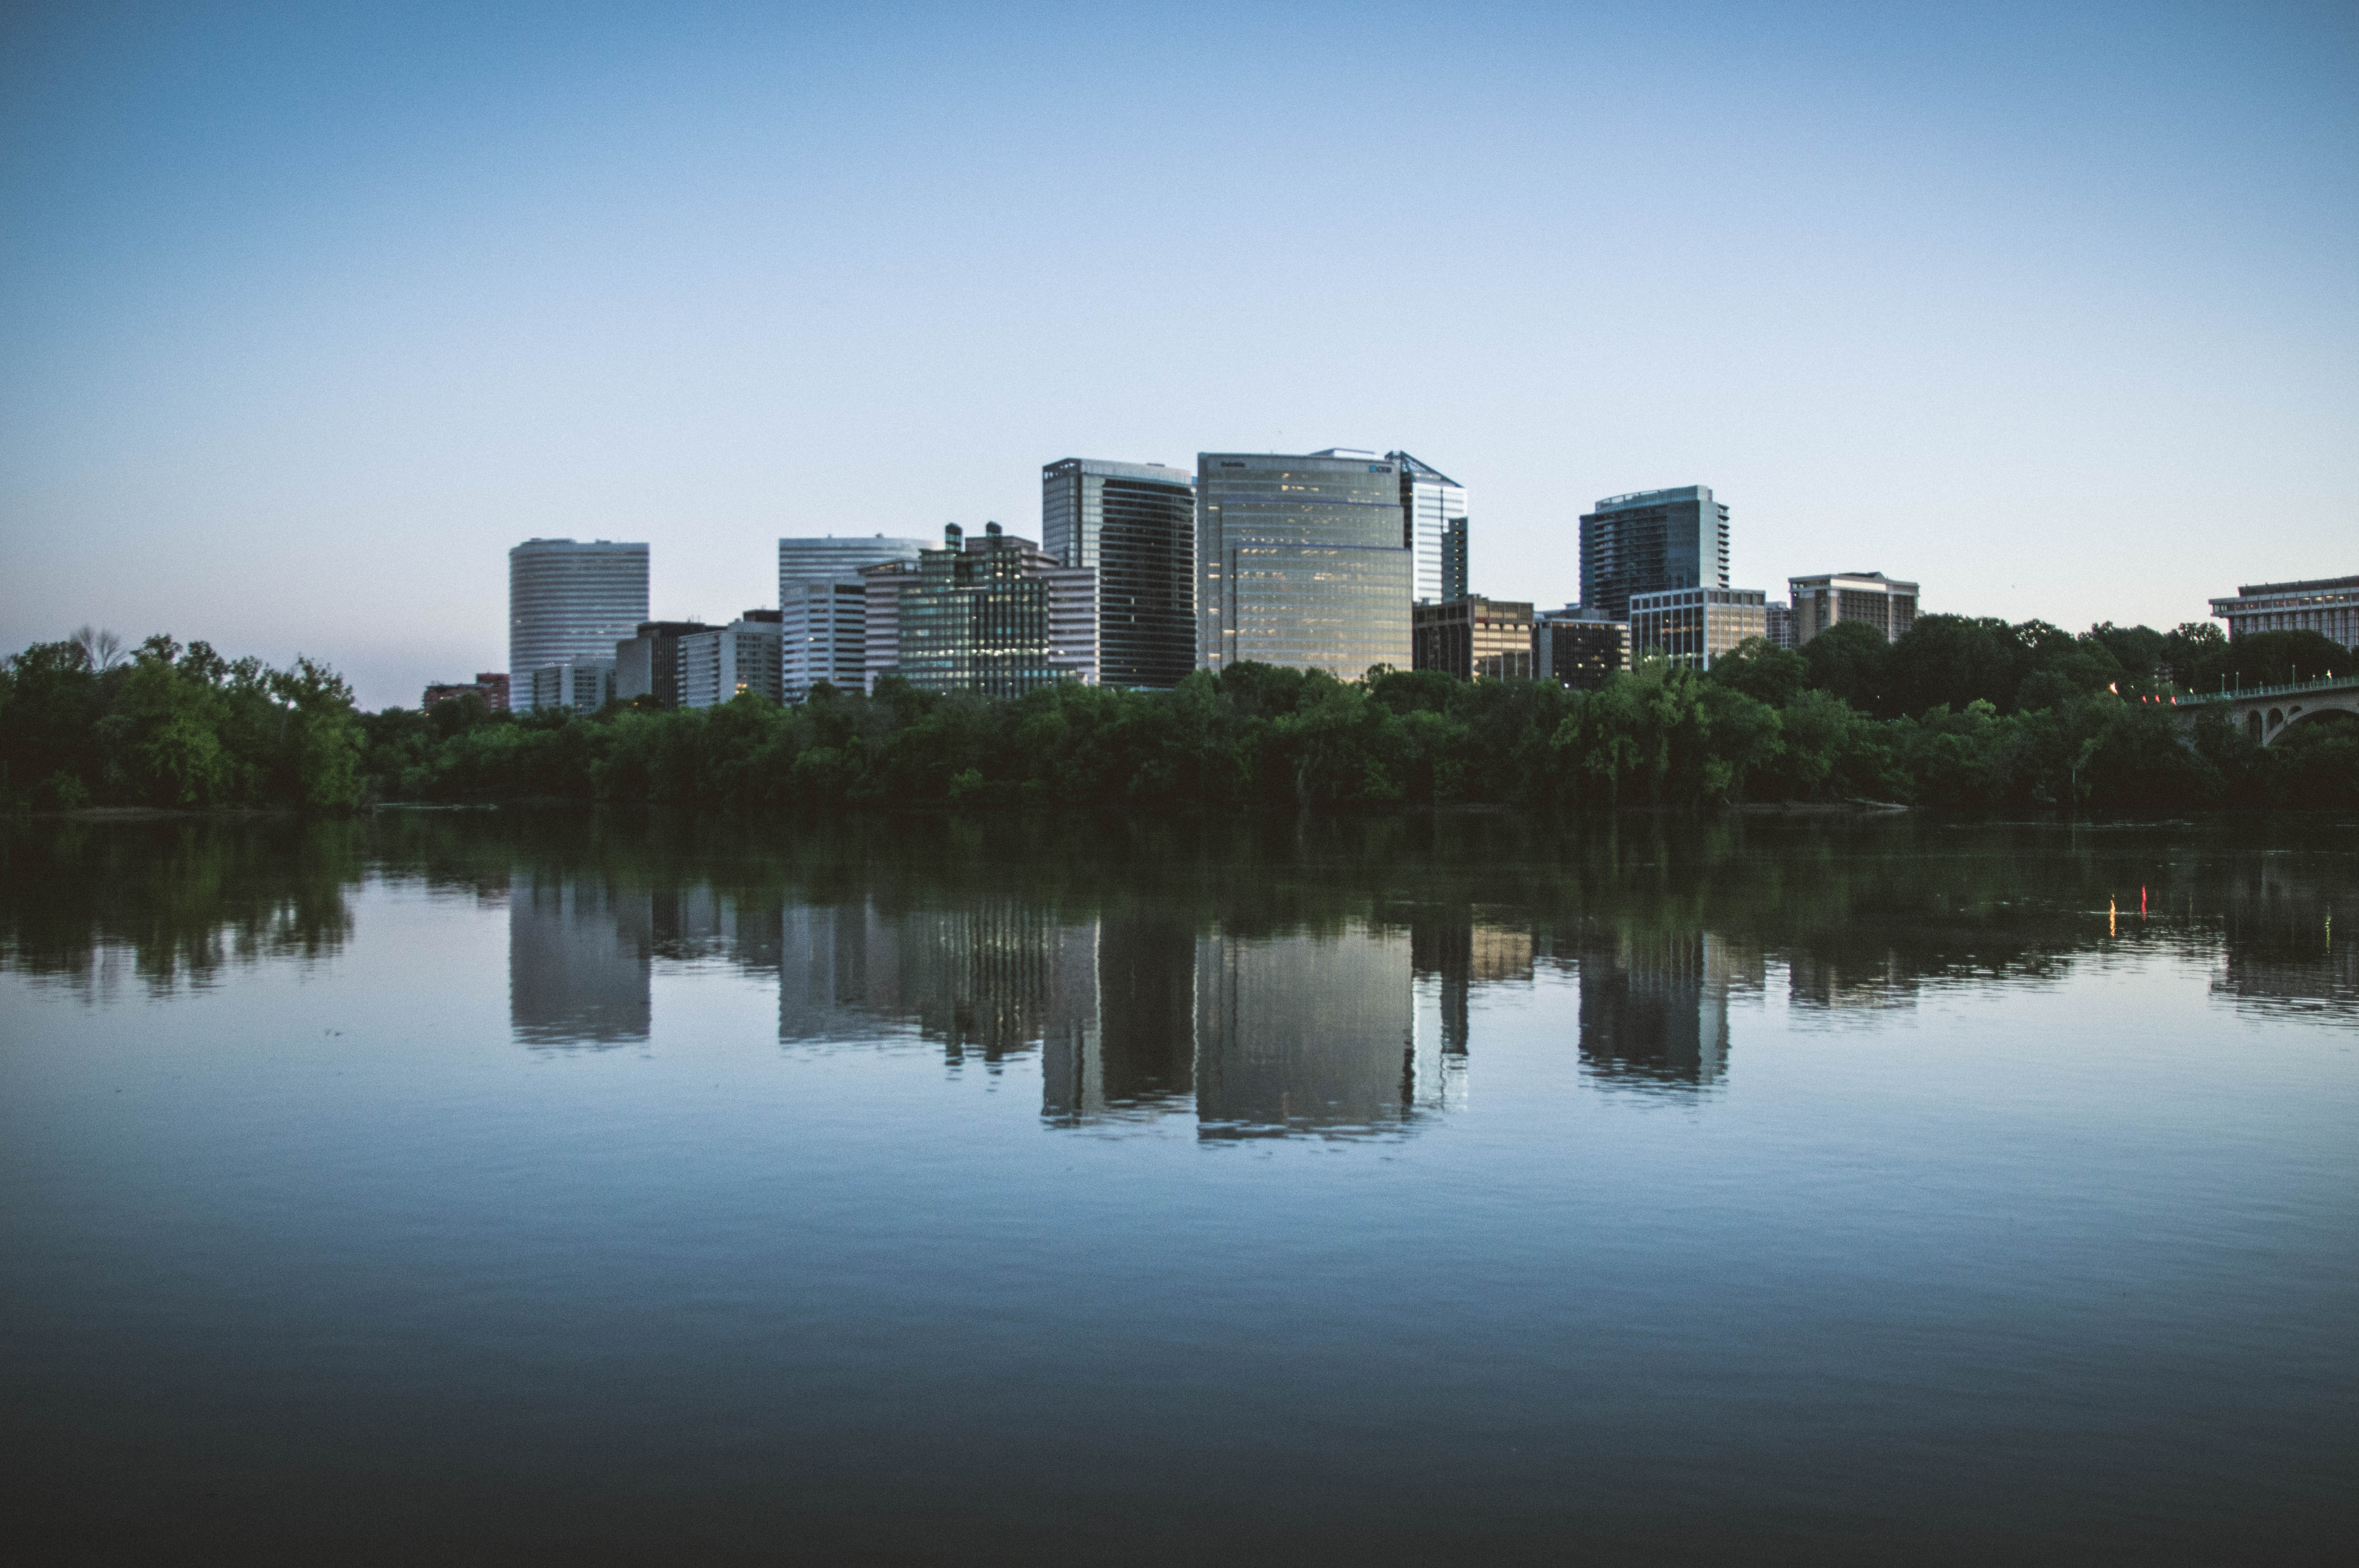 buildings with reflection on water at daytime